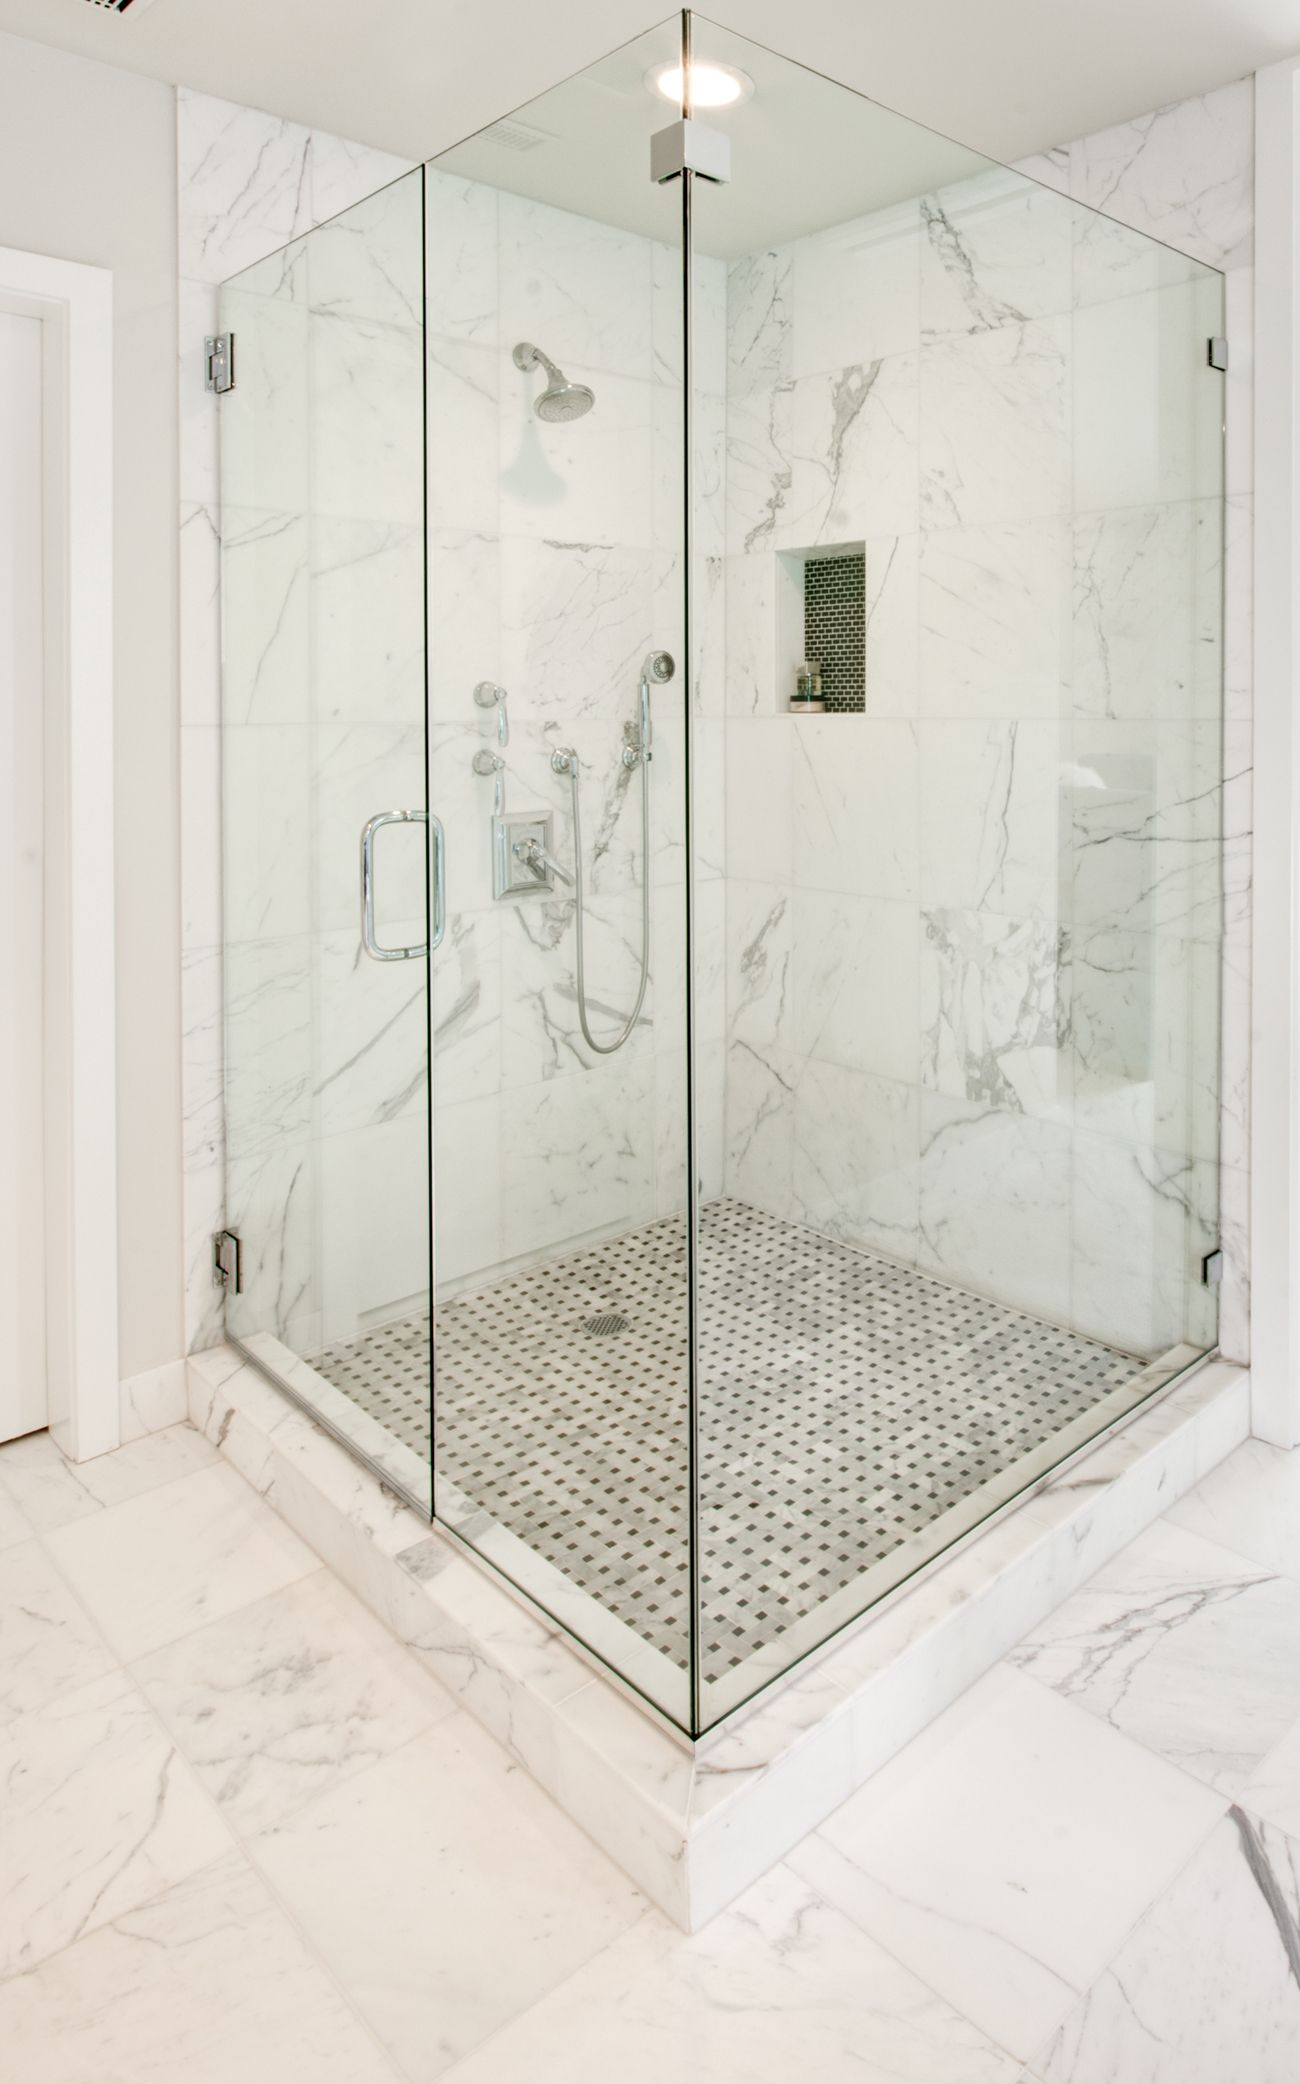 Marble Looking Tile These Five Bathroom Remodels Showcase Diverse Bathroom Tile Ideas .